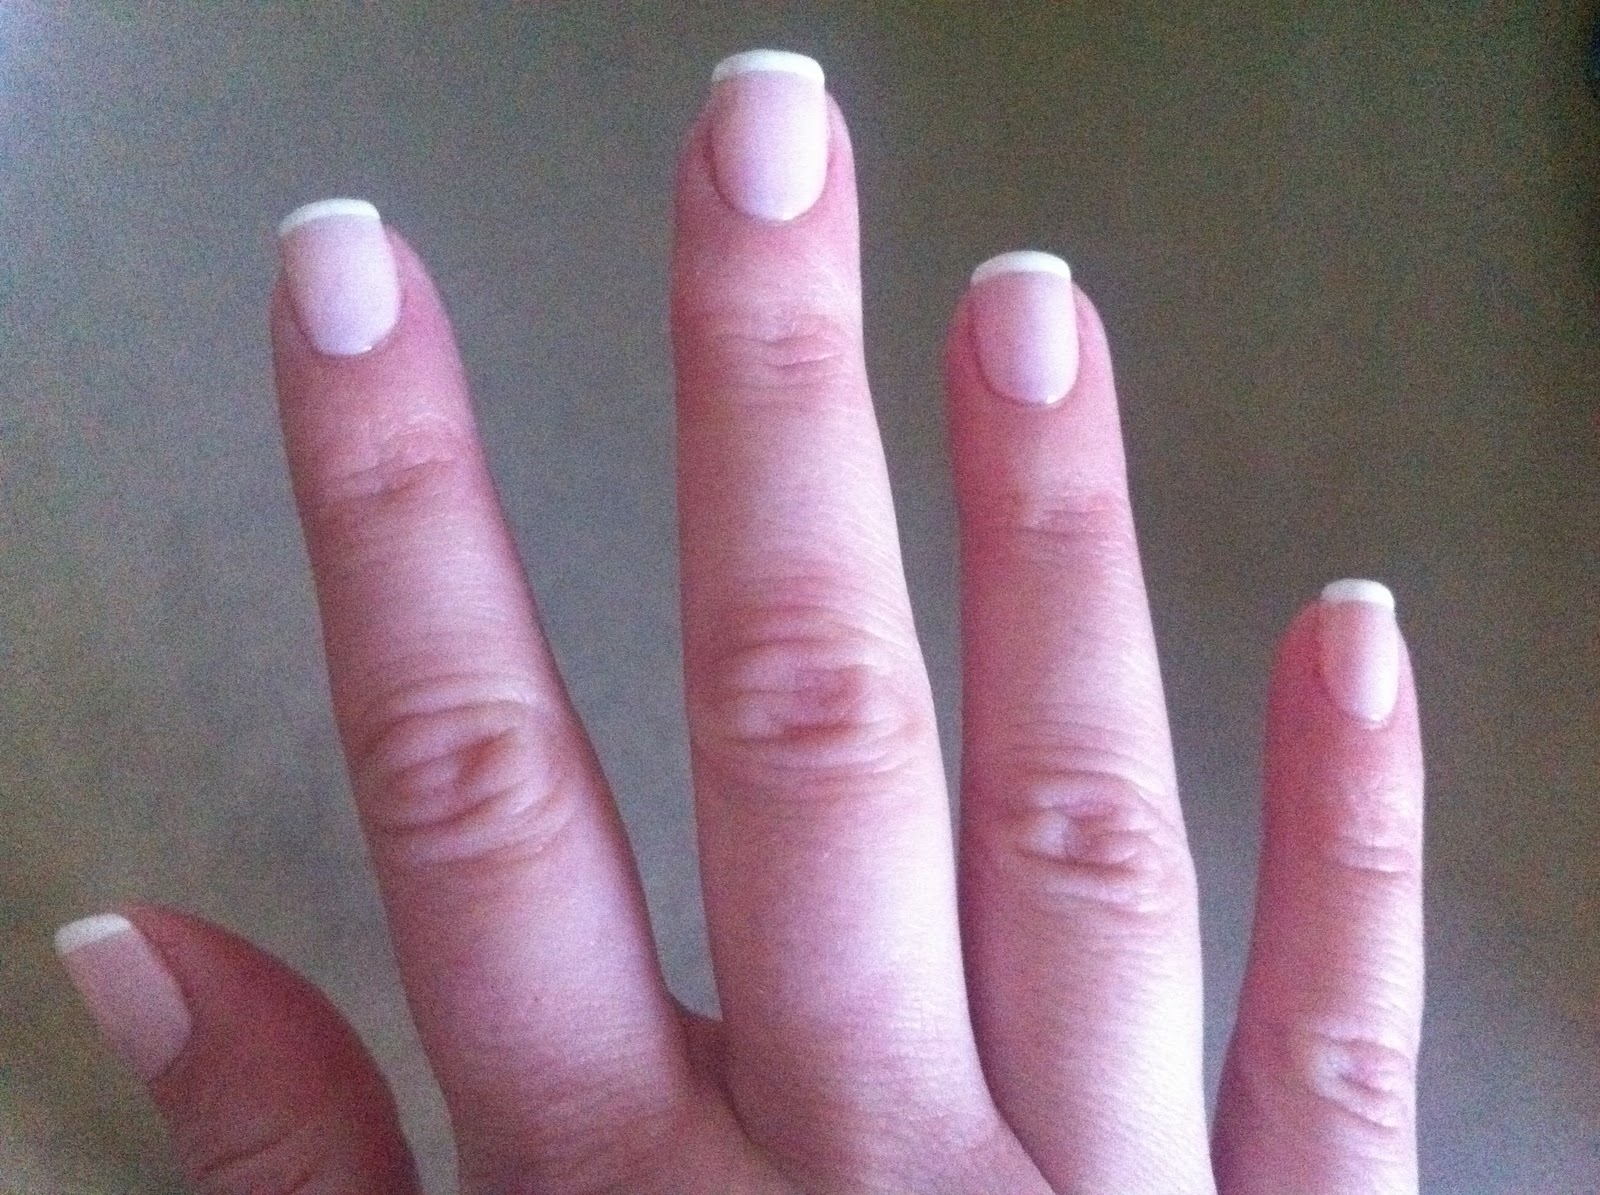 How to remove french manicure shellac